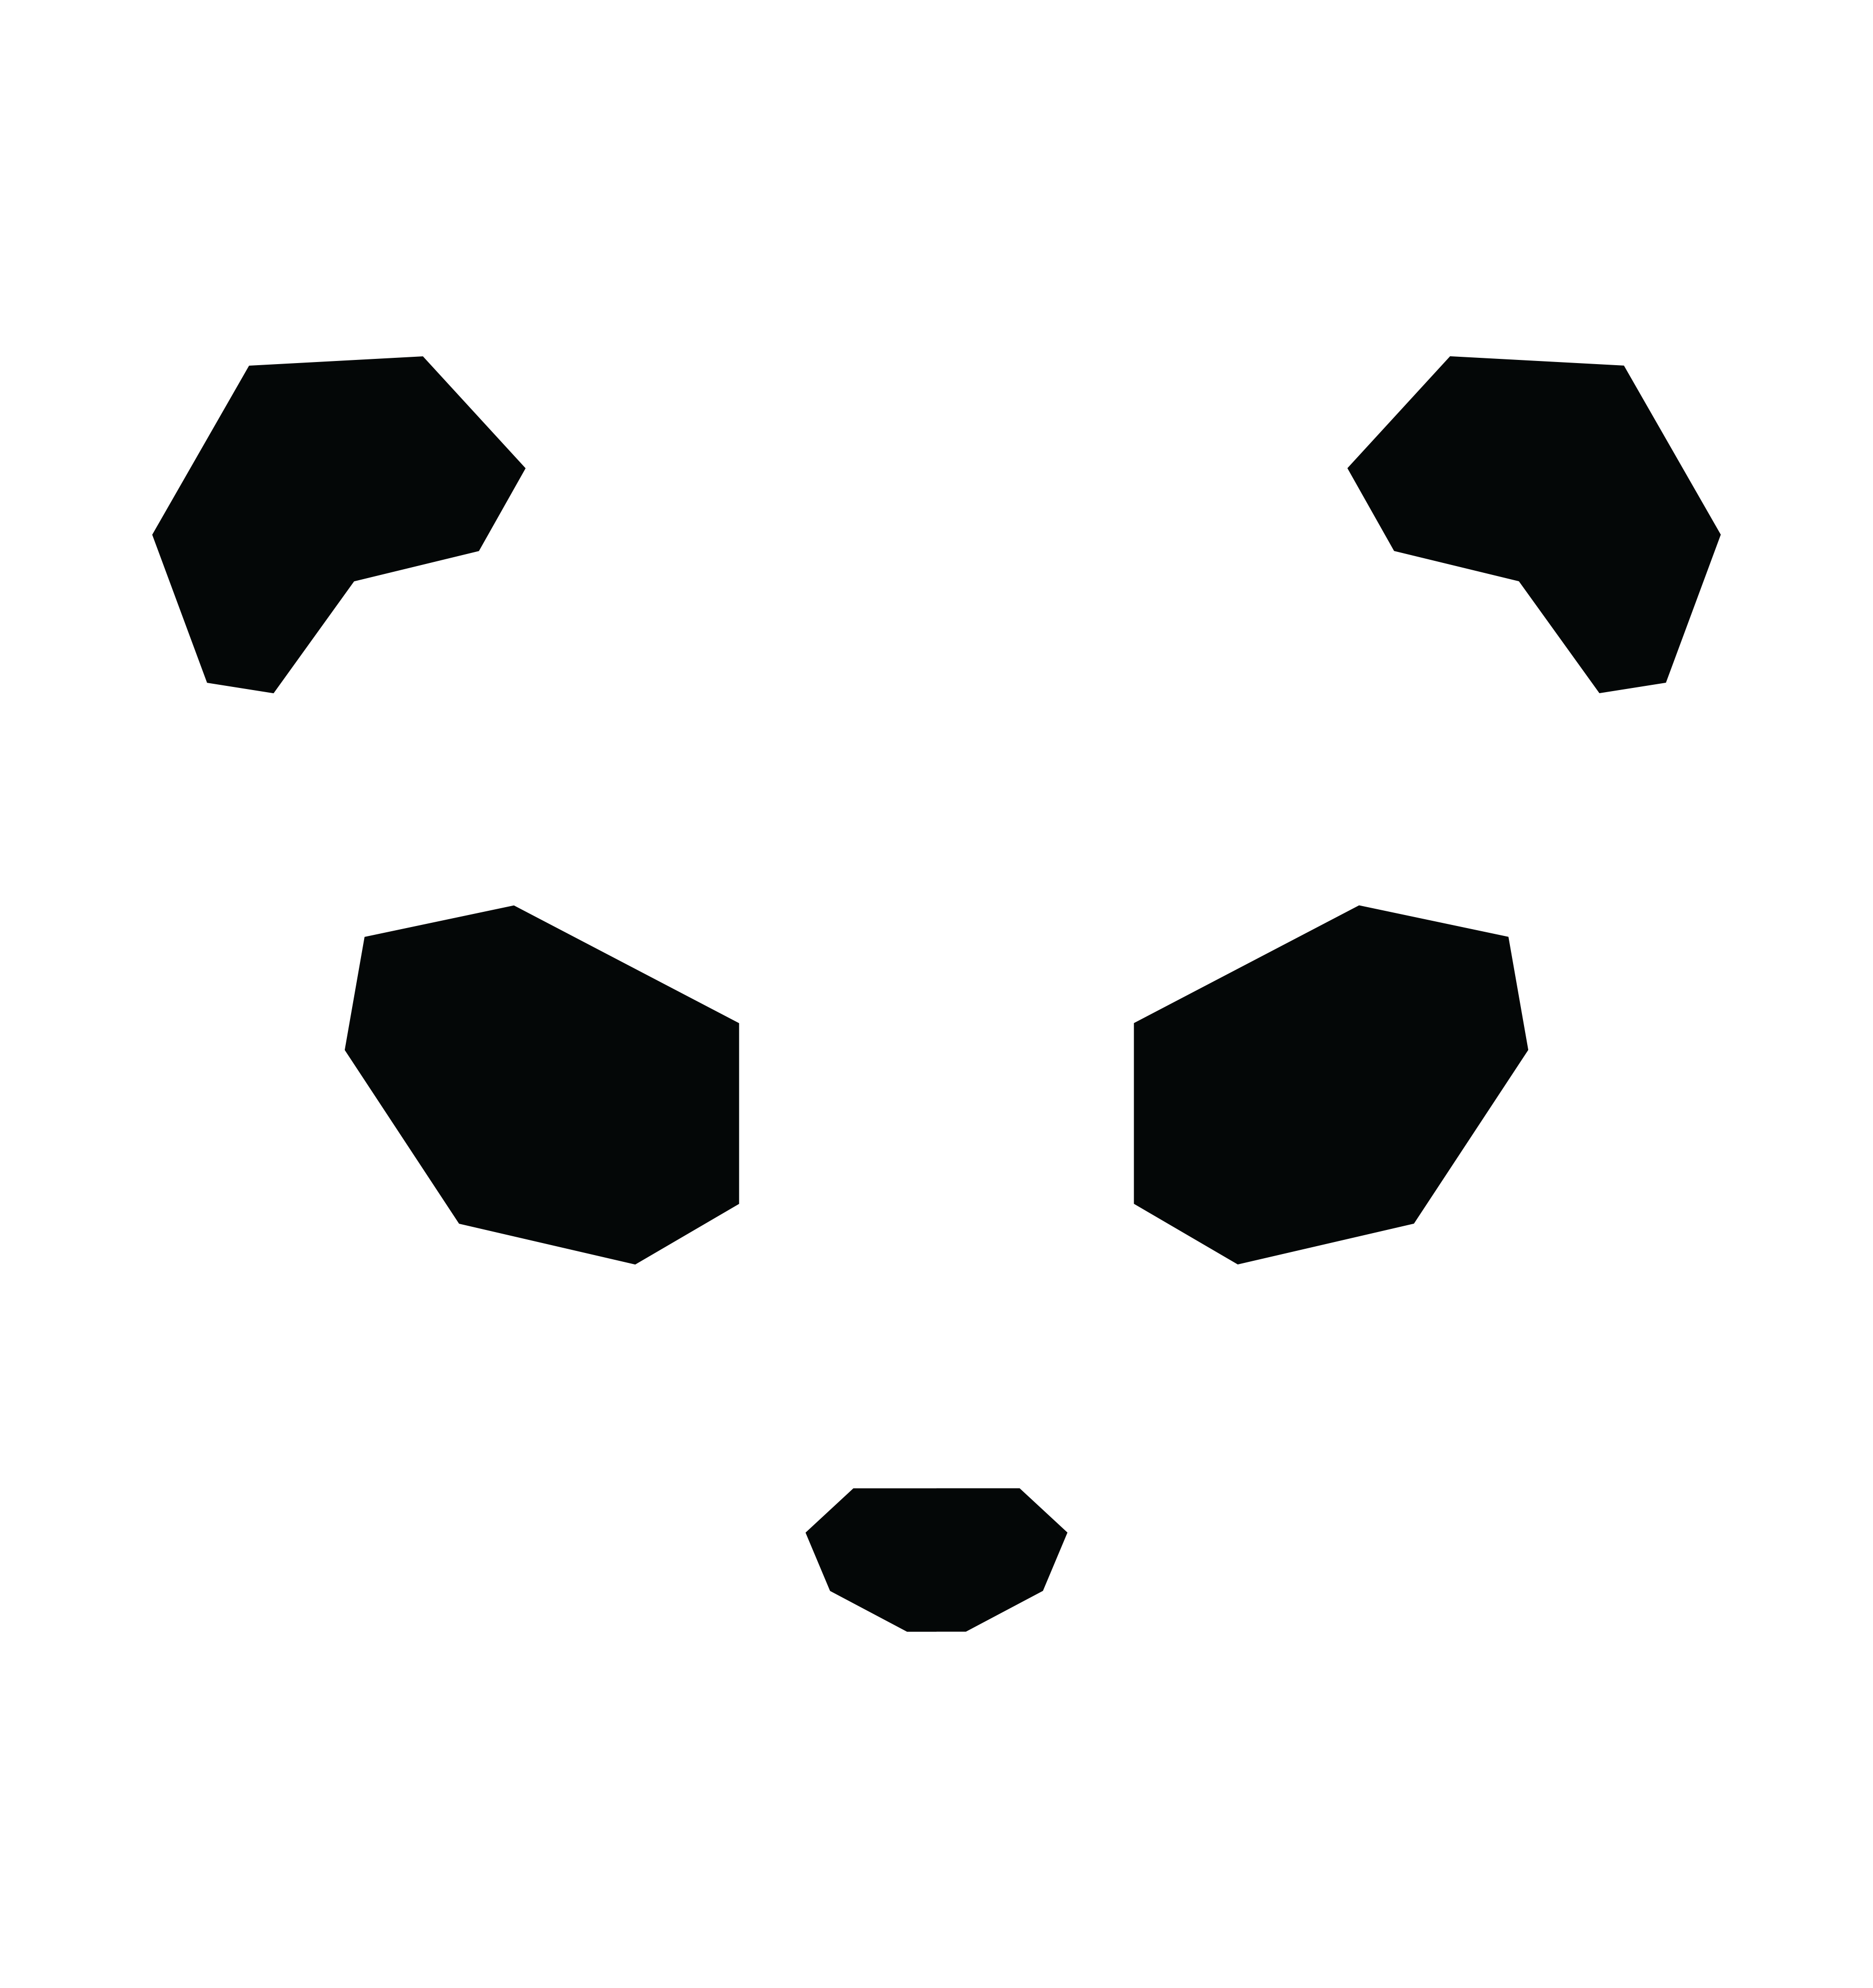 Panda silhouette png. Wooden give your business